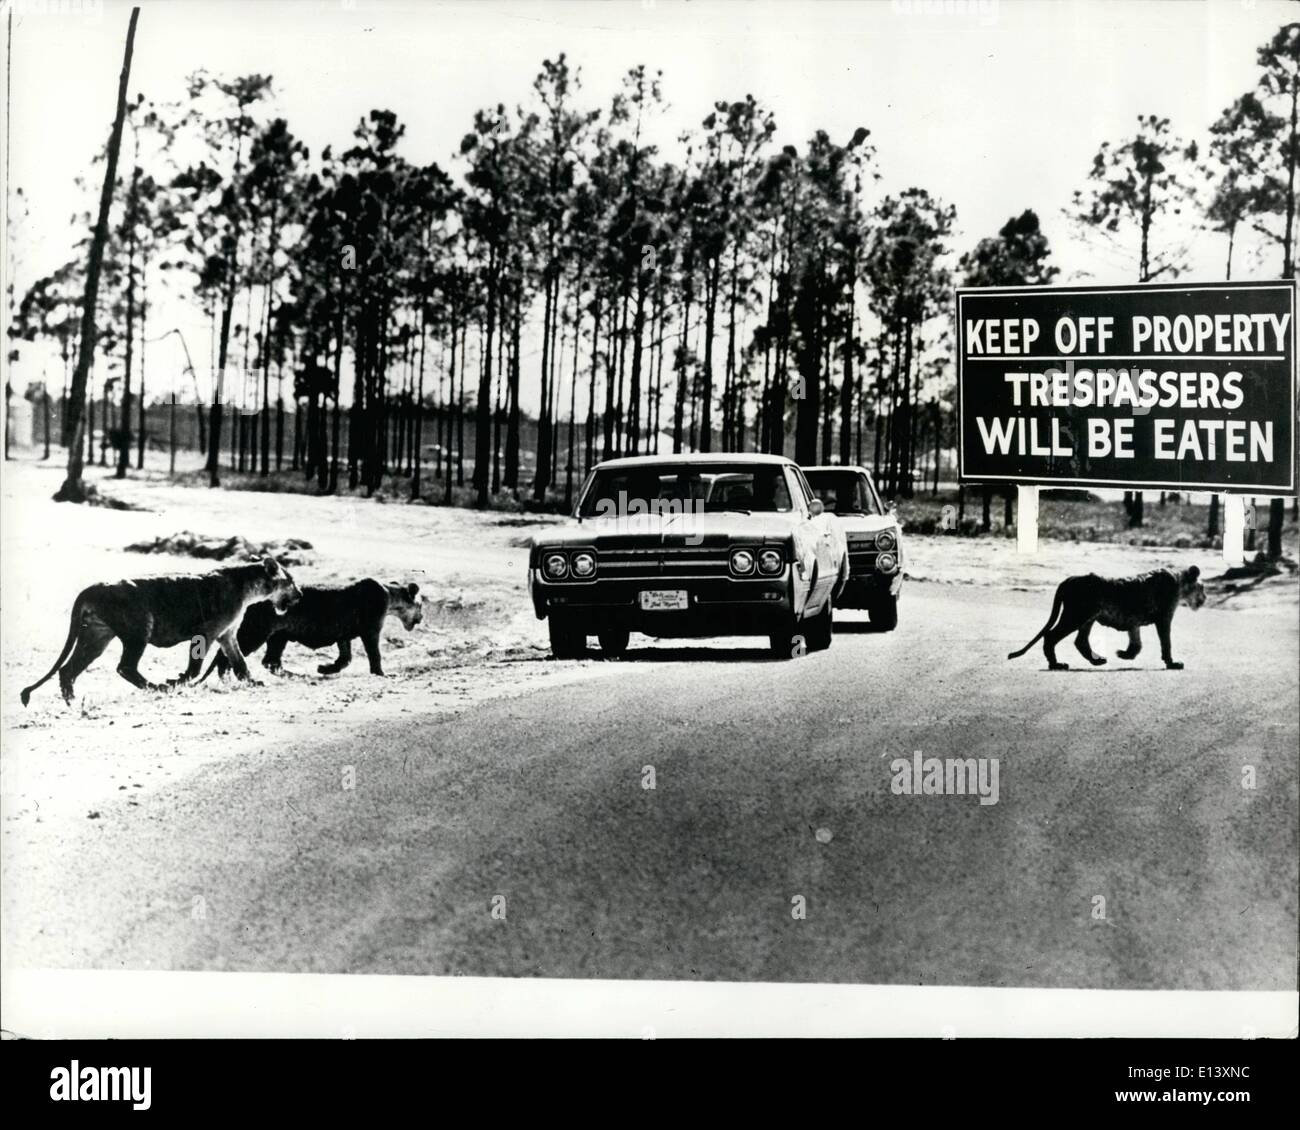 Mar. 27, 2012 - Signs warn ''trespassers will be eaten'' as new Lion preserve opens; Motorists near Royal Palm Beach, Florida, are being warned to keep in their cars as they drive through a newly opened attraction called Lion Country Safari. Biggest of its kind in the world, the 640 acre site has been designed and stocked as an African jungle at a cost of well ever 1,000,000. Britain's famous see director Richard Chipperfield is involved in the reserve which clearly warms drivers against the possibility of being eaten if they venture out of their cars. - Stock Image